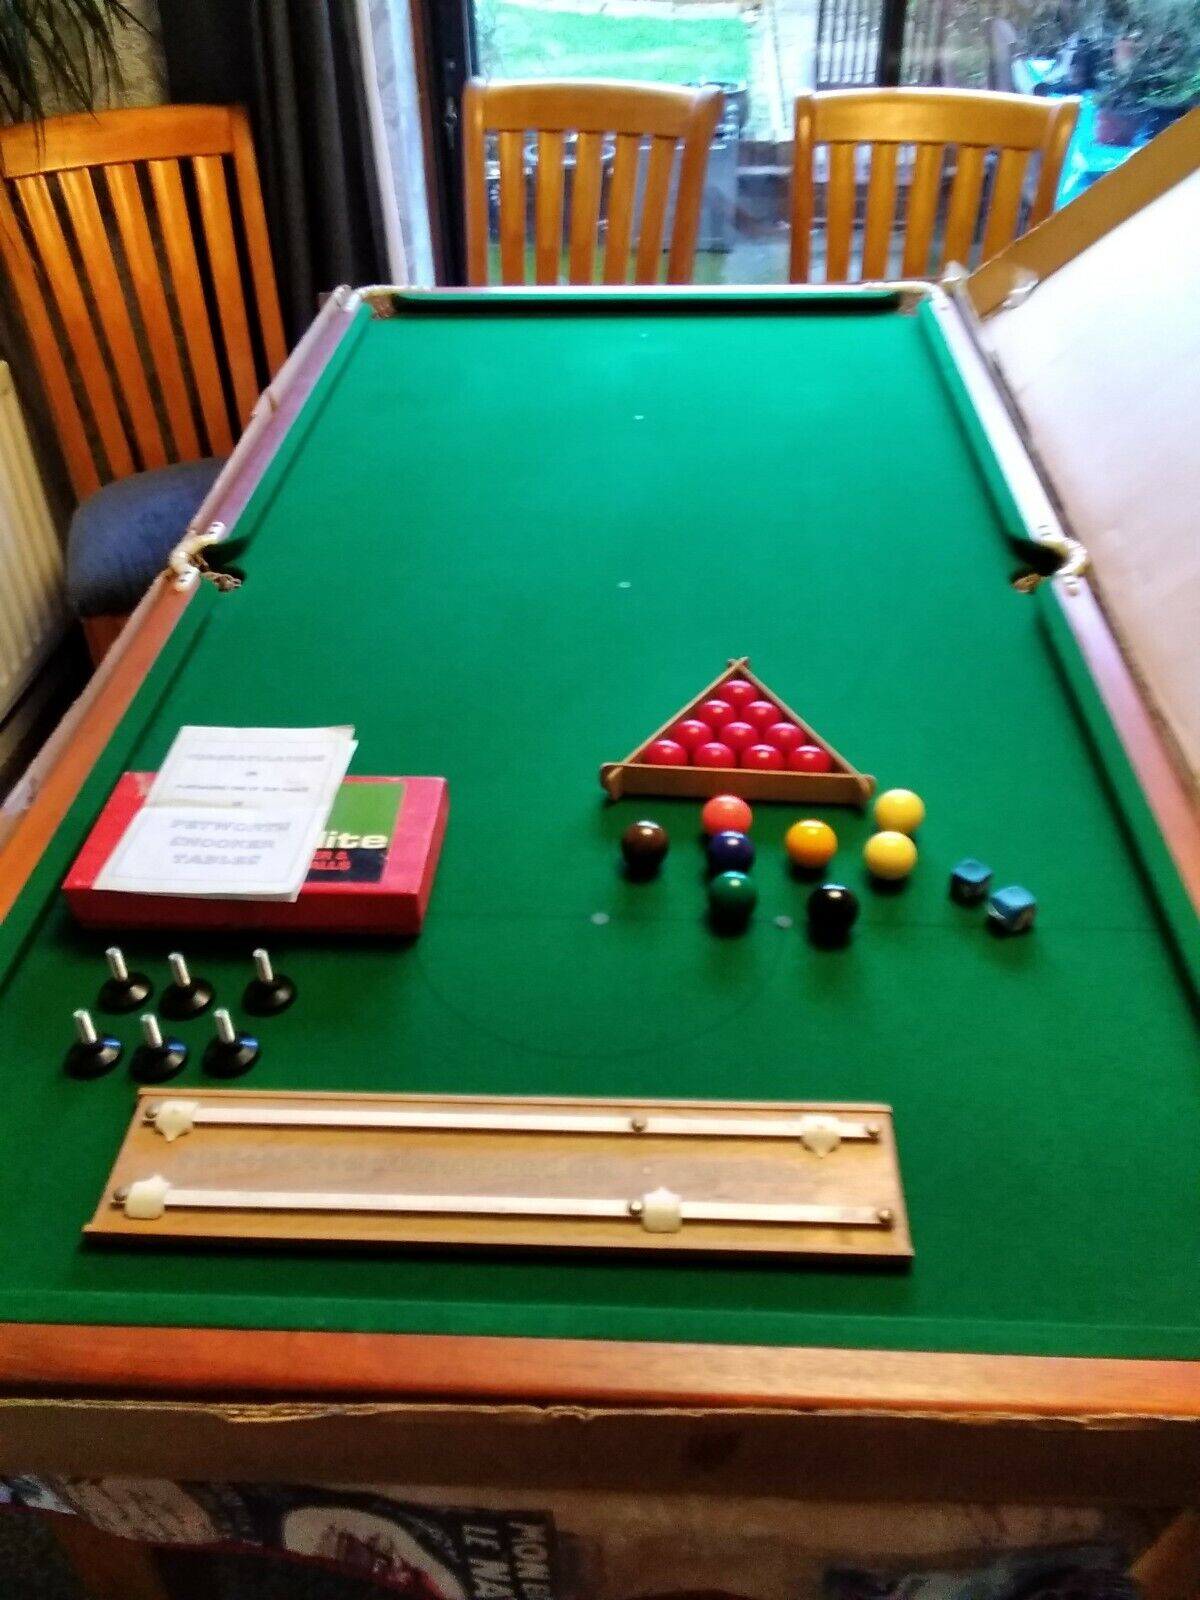 Petworth House Snooker Table 6 x 3 Including Balls Cues Triangle Scoreboard